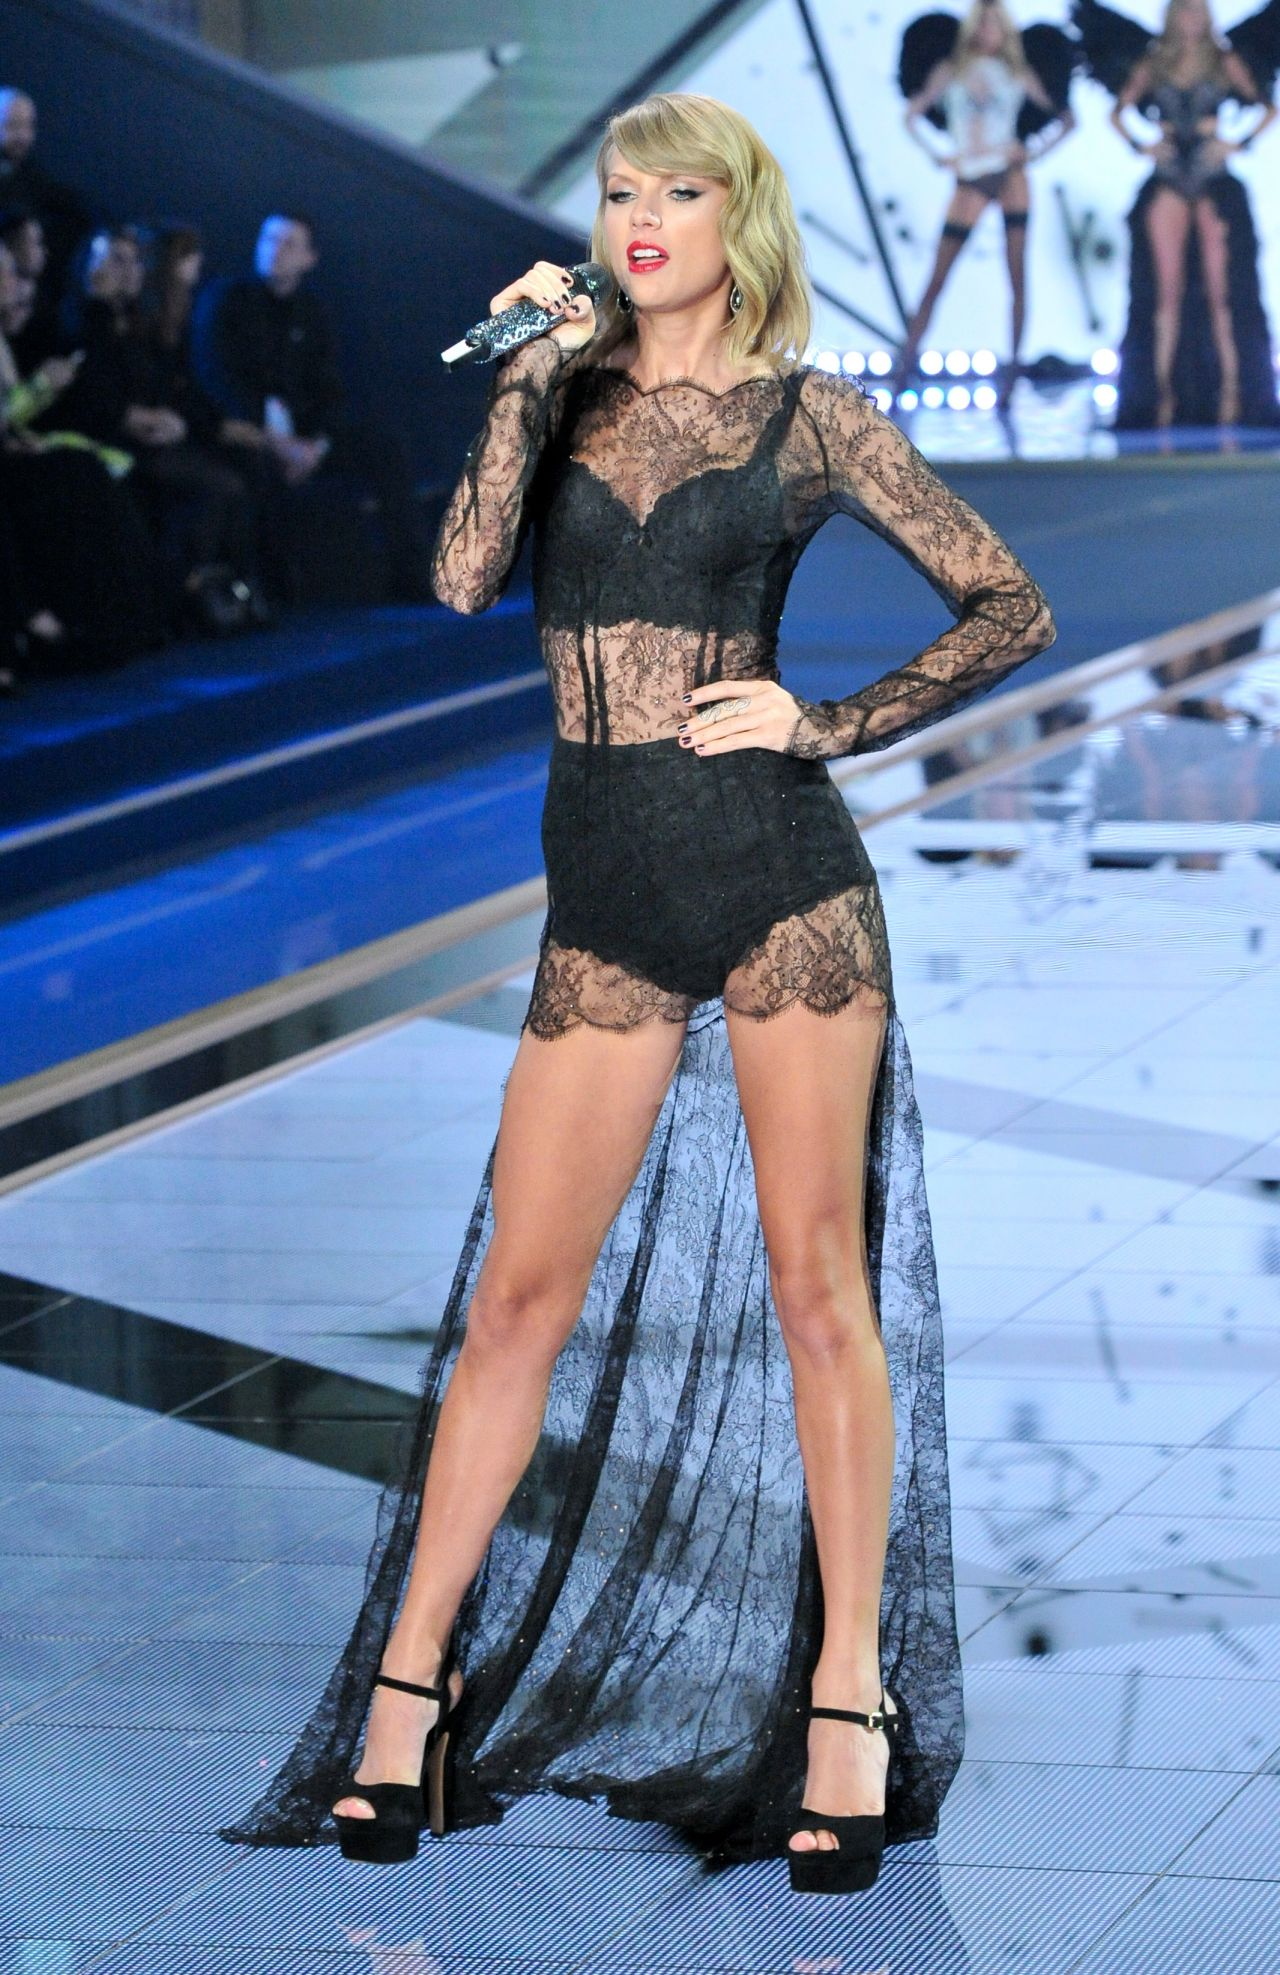 Victoria's Secret Fashion Show 2014 Taylor Swift Taylor Swift Performs at